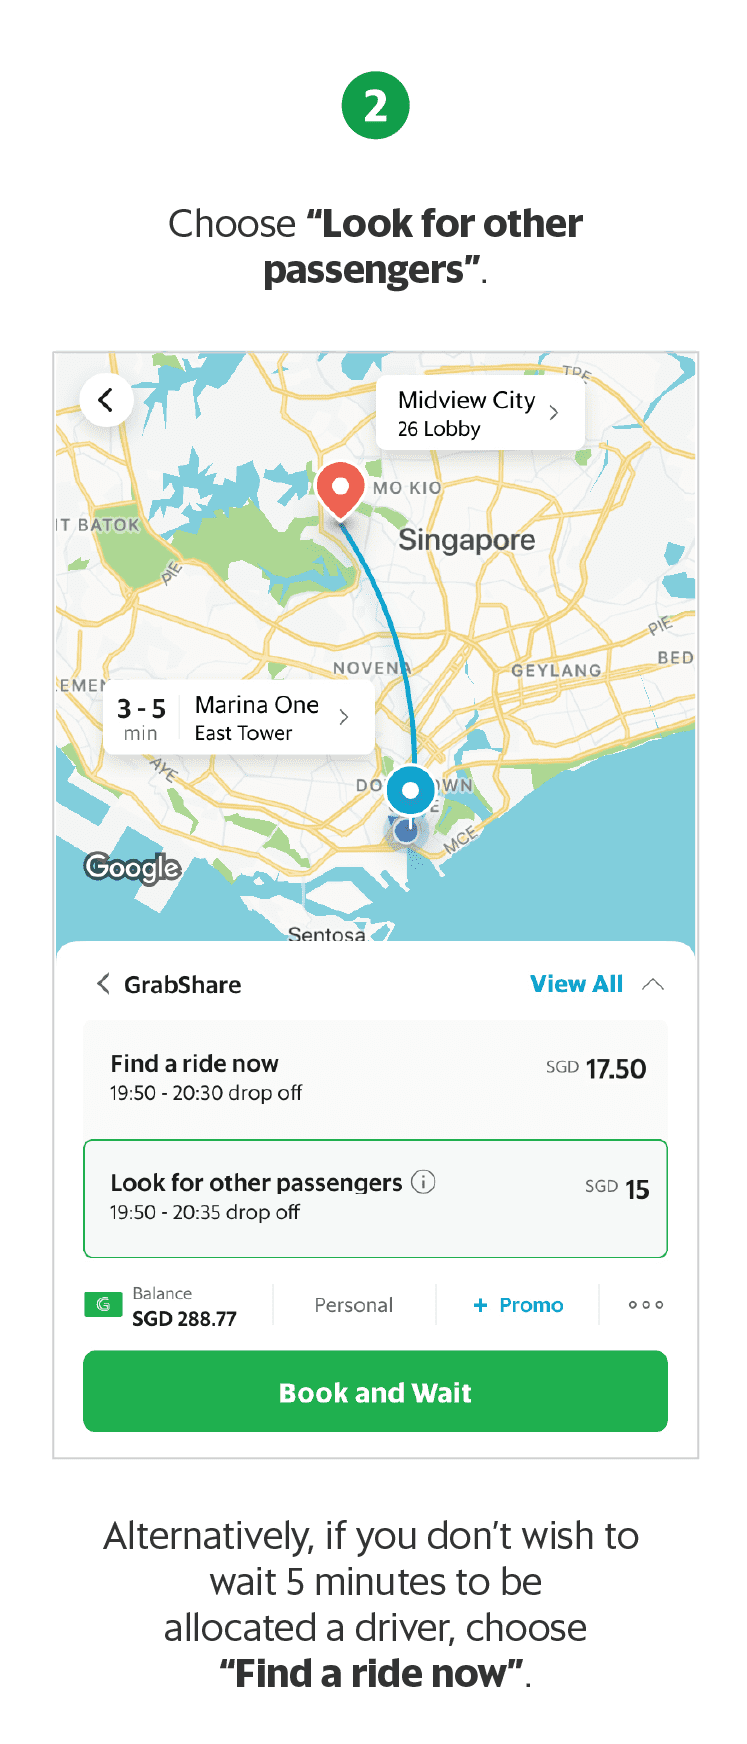 GrabShare – Real Time Ride Sharing Service | Grab SG